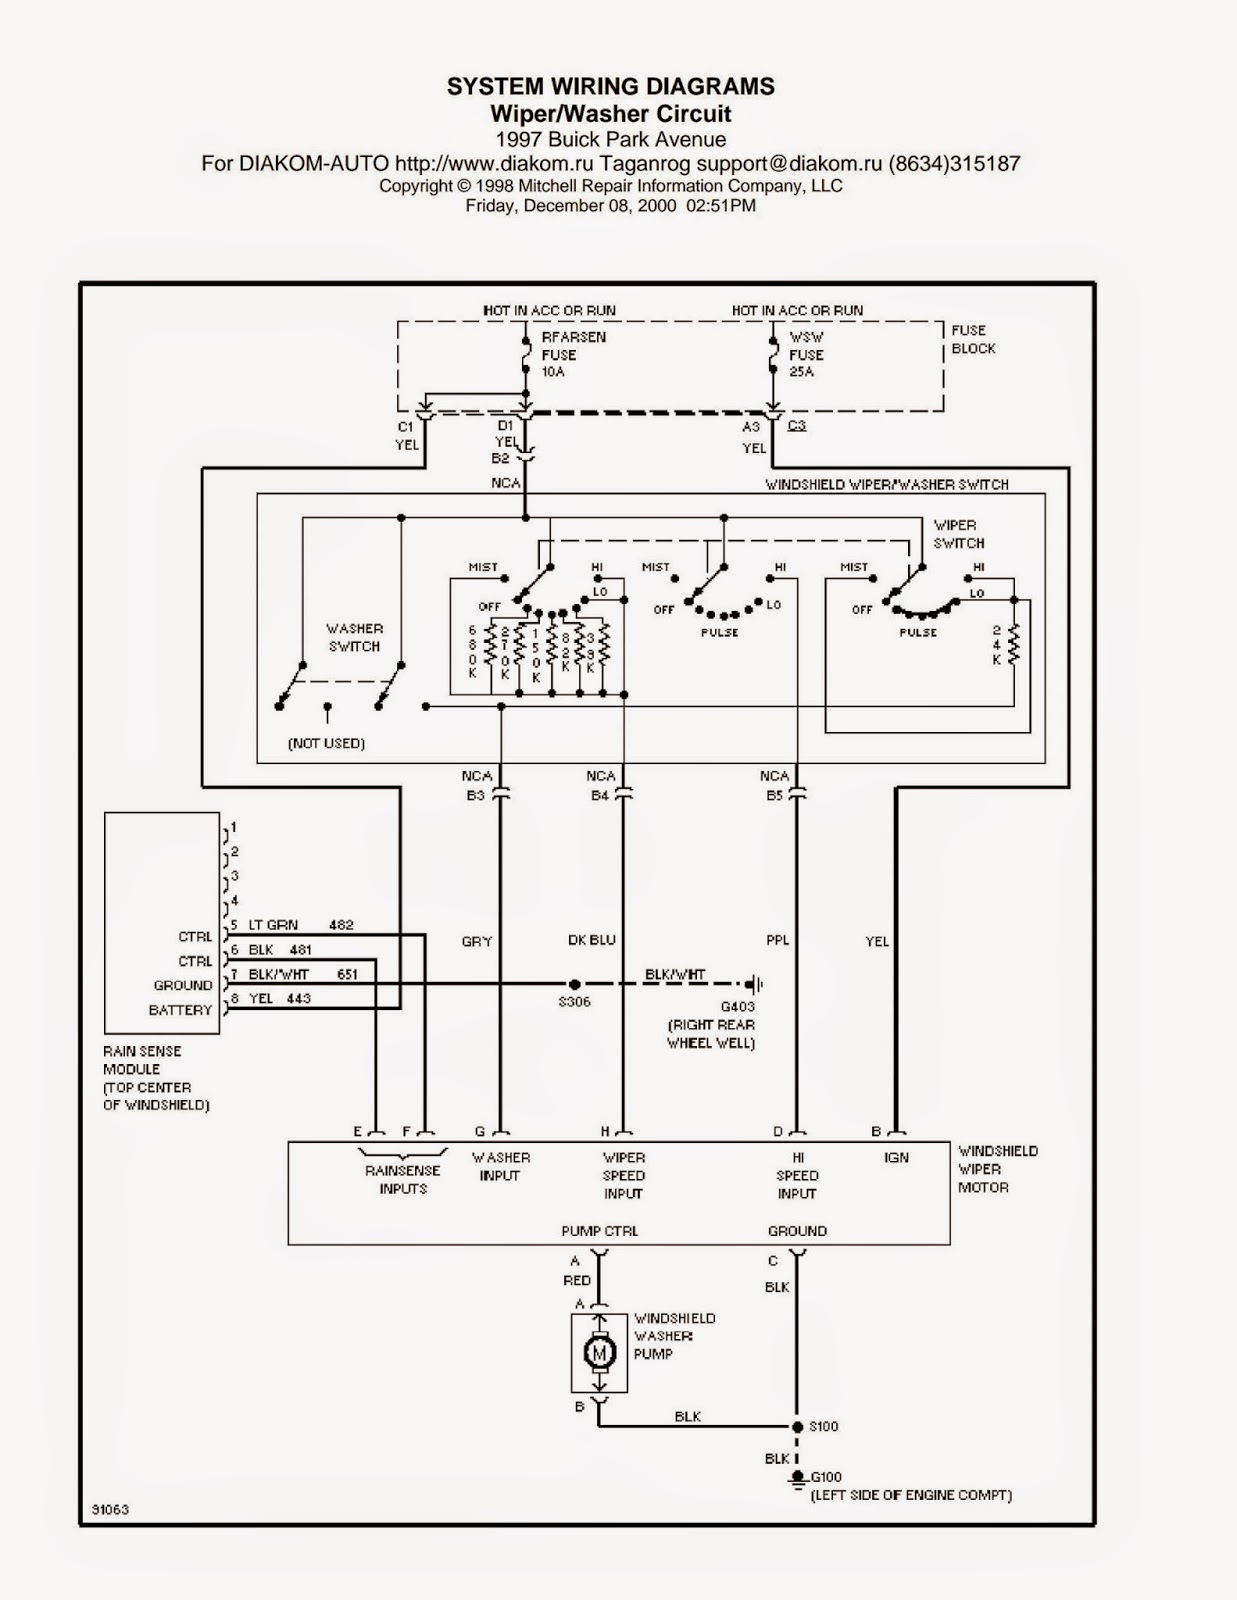 1997 jeep grand cherokee ignition coil wiring diagram wiring diagrams and free manual ebooks: 1997 jeep cherokee ...